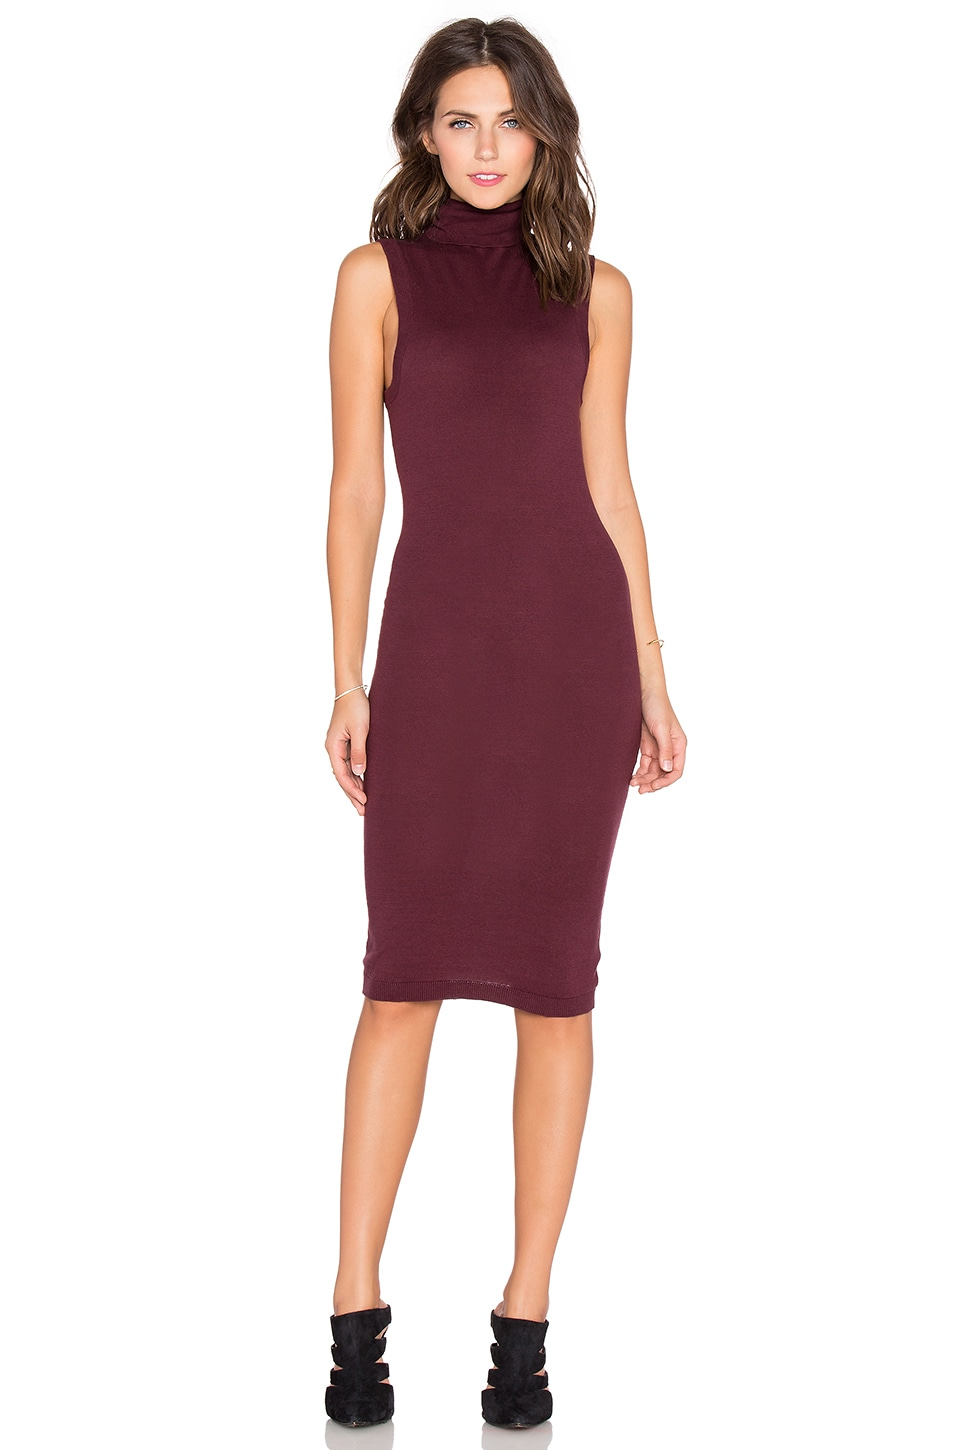 Bobi Funnel Neck Midi Sweater Dress in Malbec